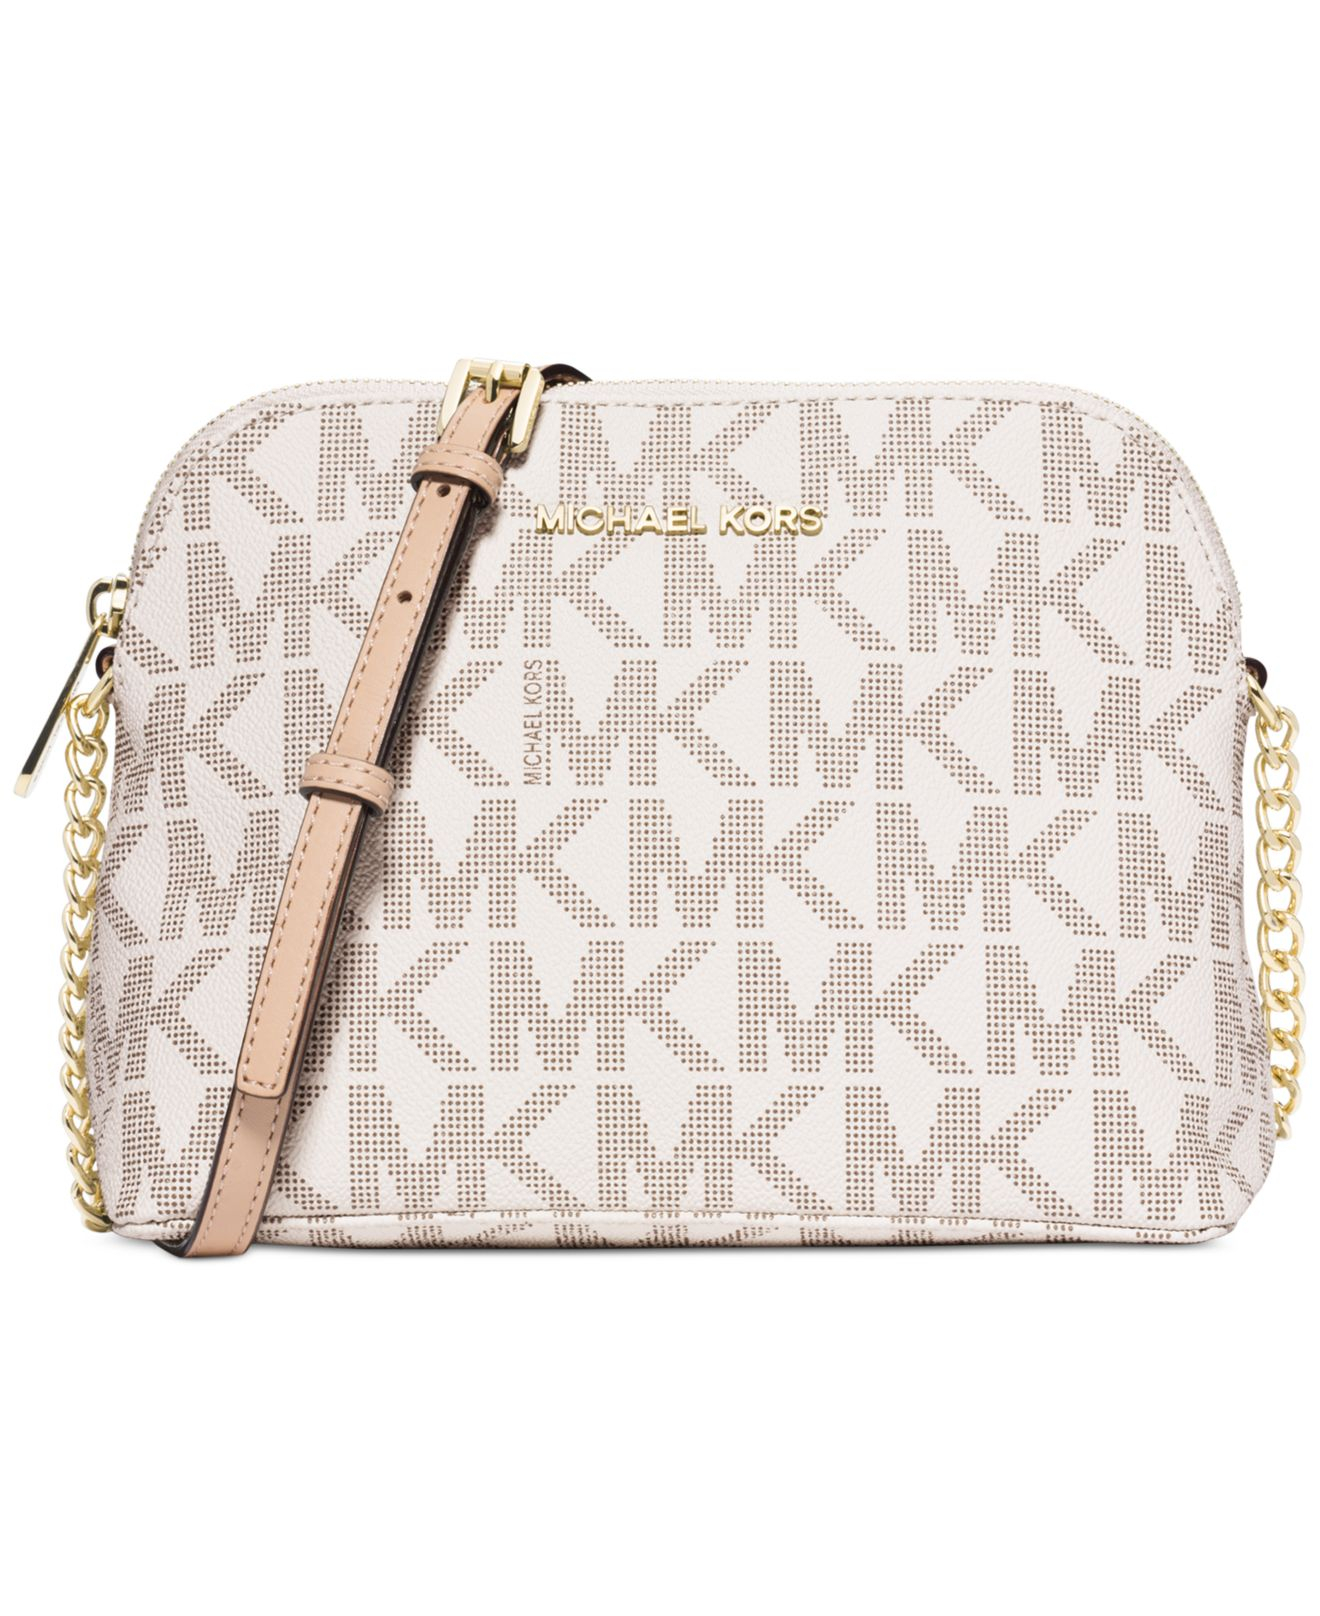 eeeec2cf9e47 Gallery. Previously sold at  Macy s · Women s Michael Kors Cindy ...